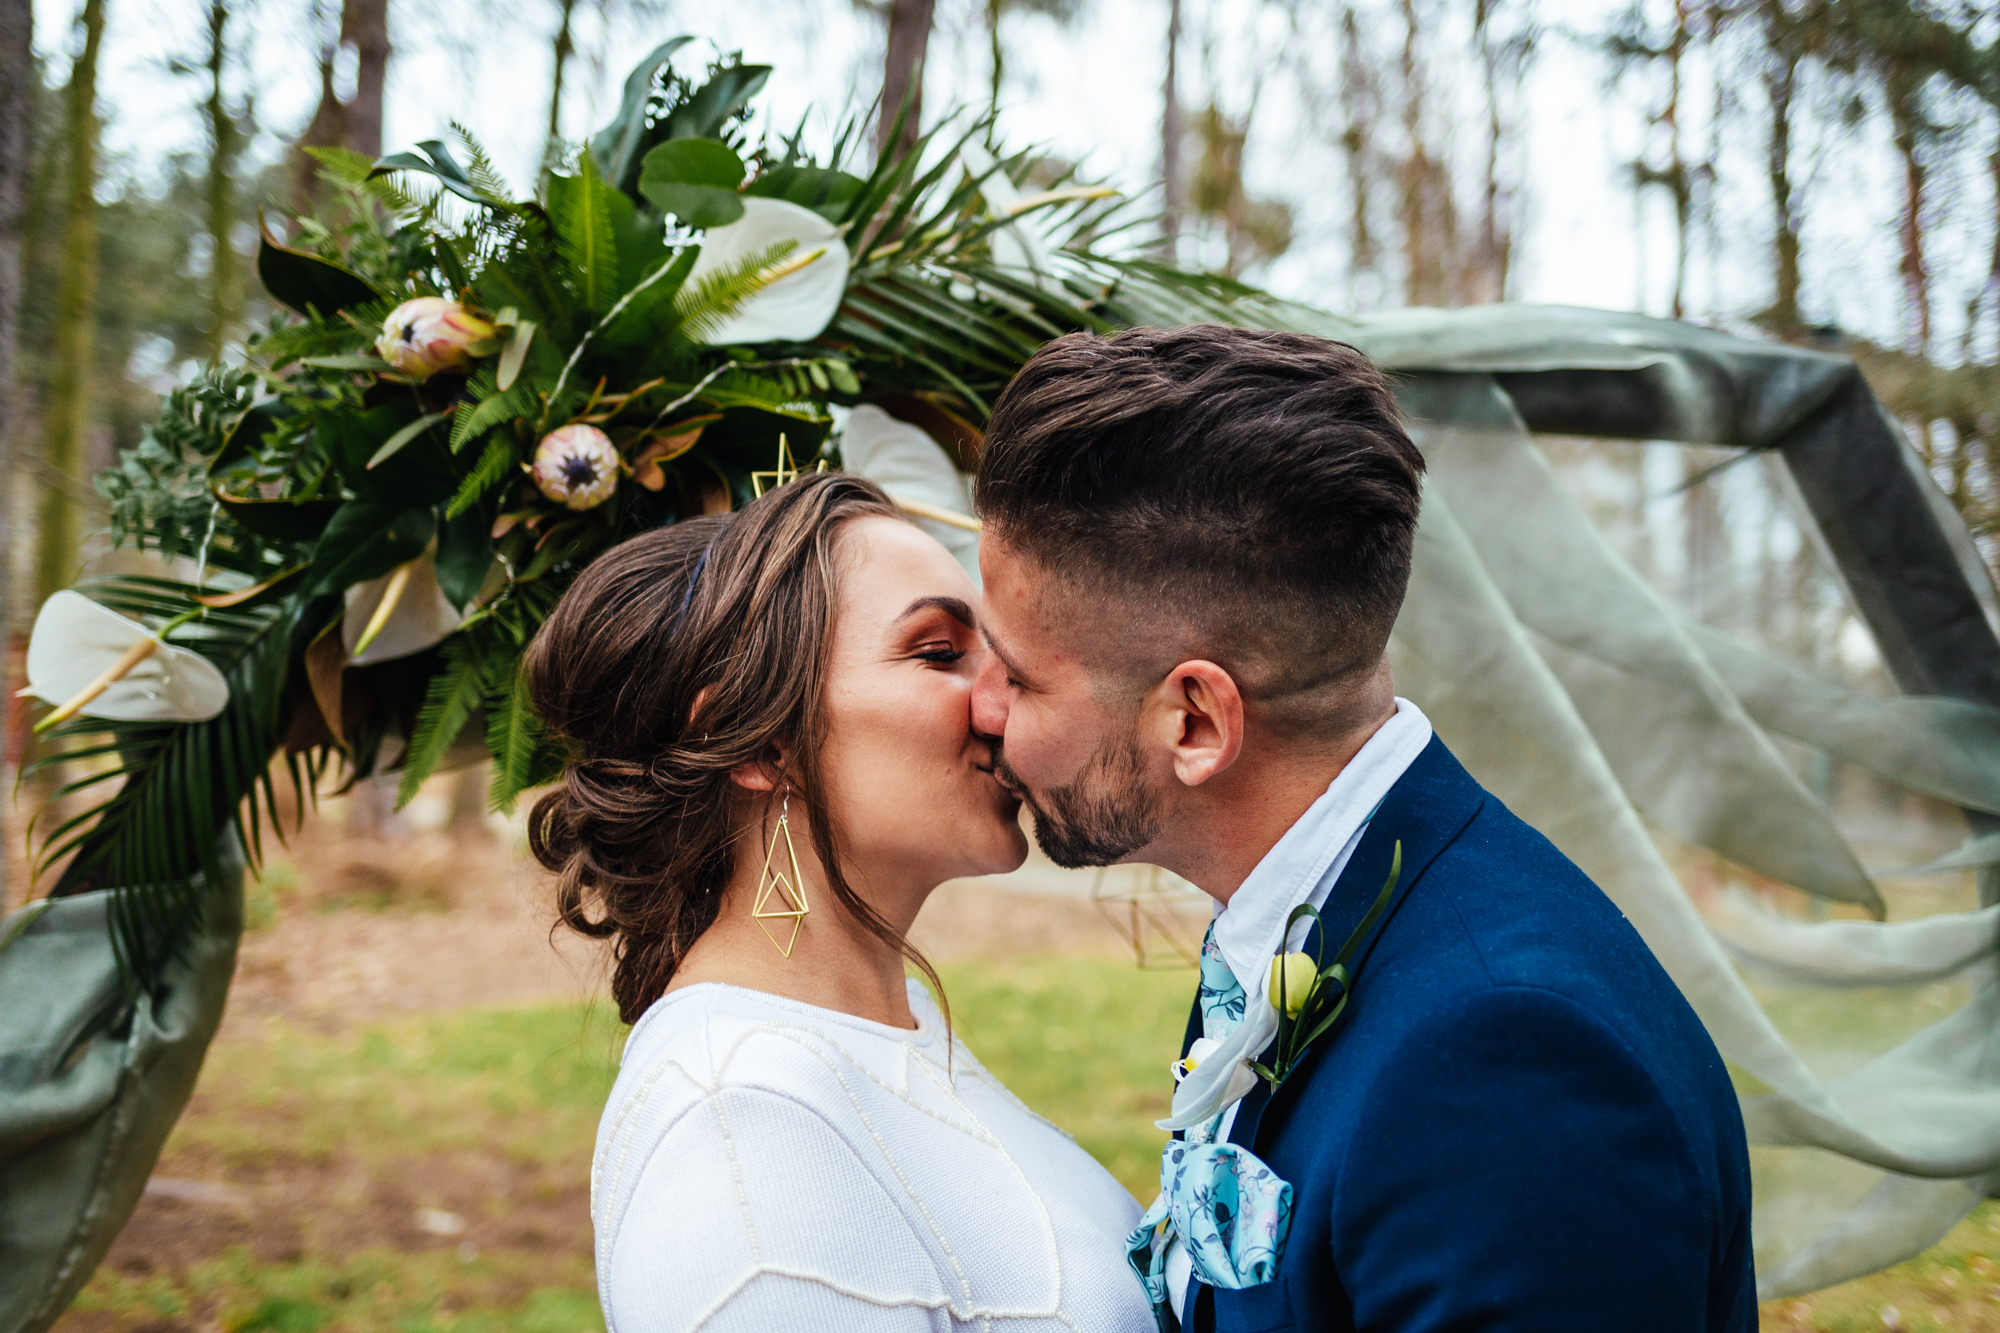 Relaxed Wedding - Couple kissing in front of backdrop at outdoor ceremony